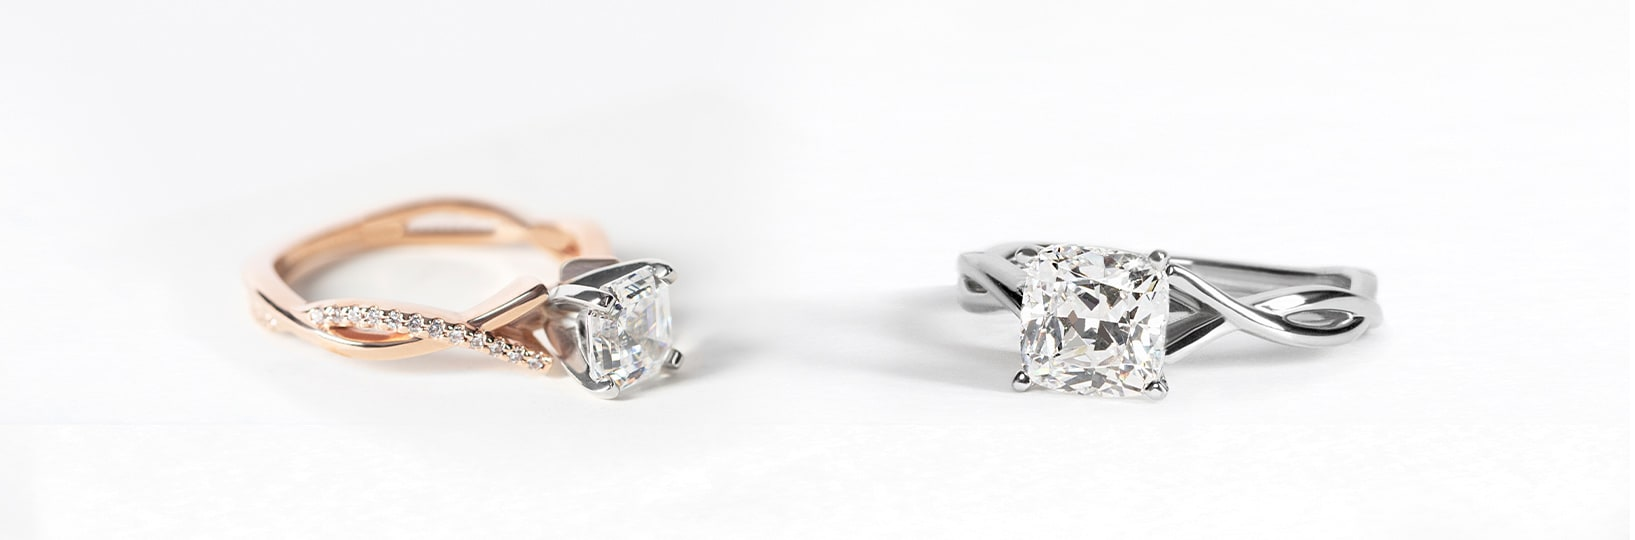 Two engagement rings compared side-by-side